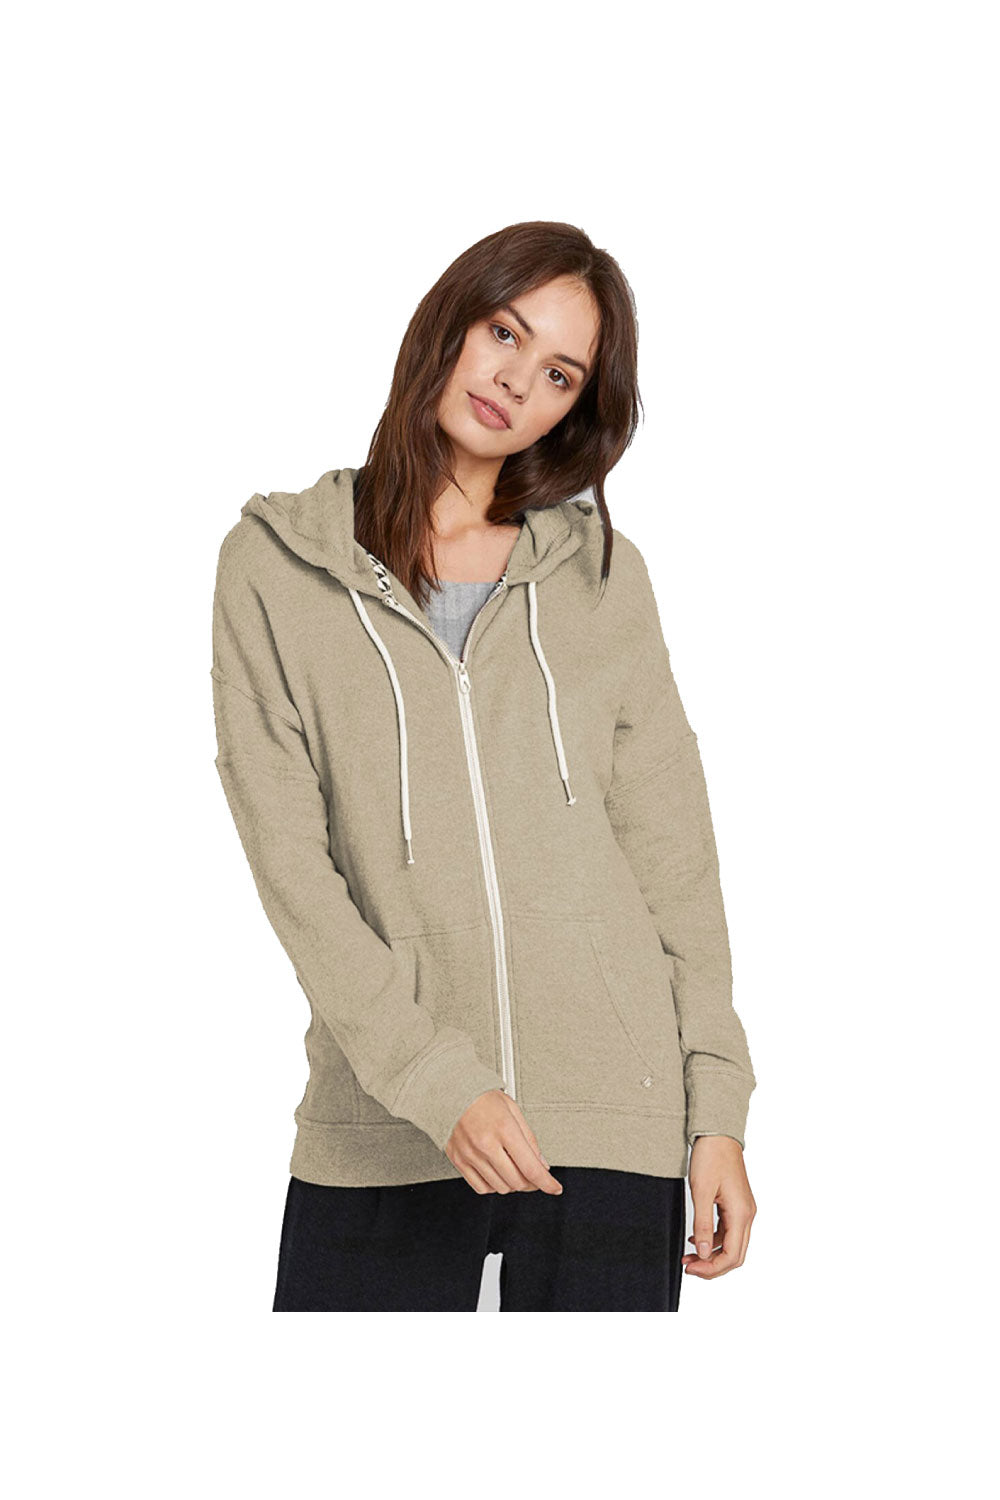 VOLCOM LIL (Lived In Lounge) Women's Zip Fleece Jumper